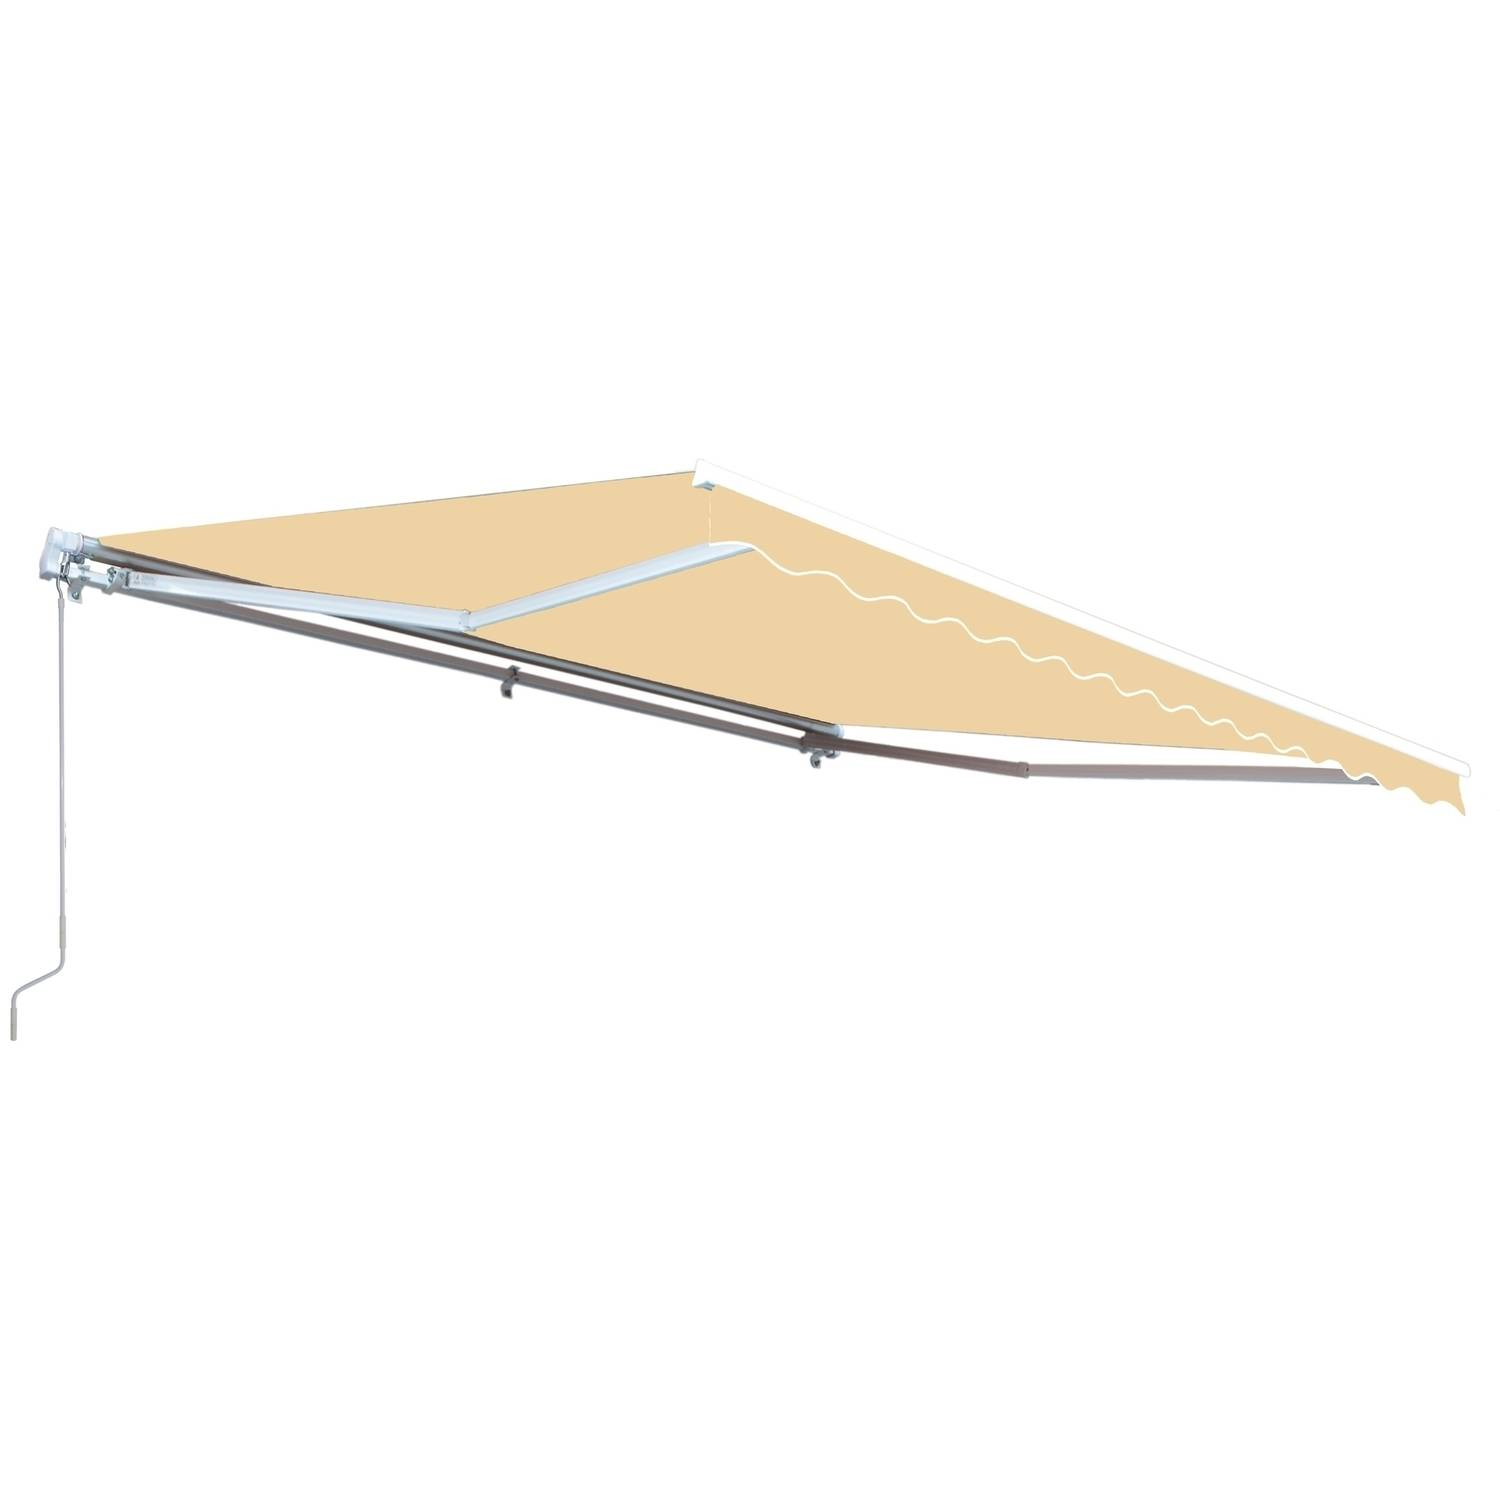 ALEKO 12' x 10' Retractable Patio Awning, Ivory Color